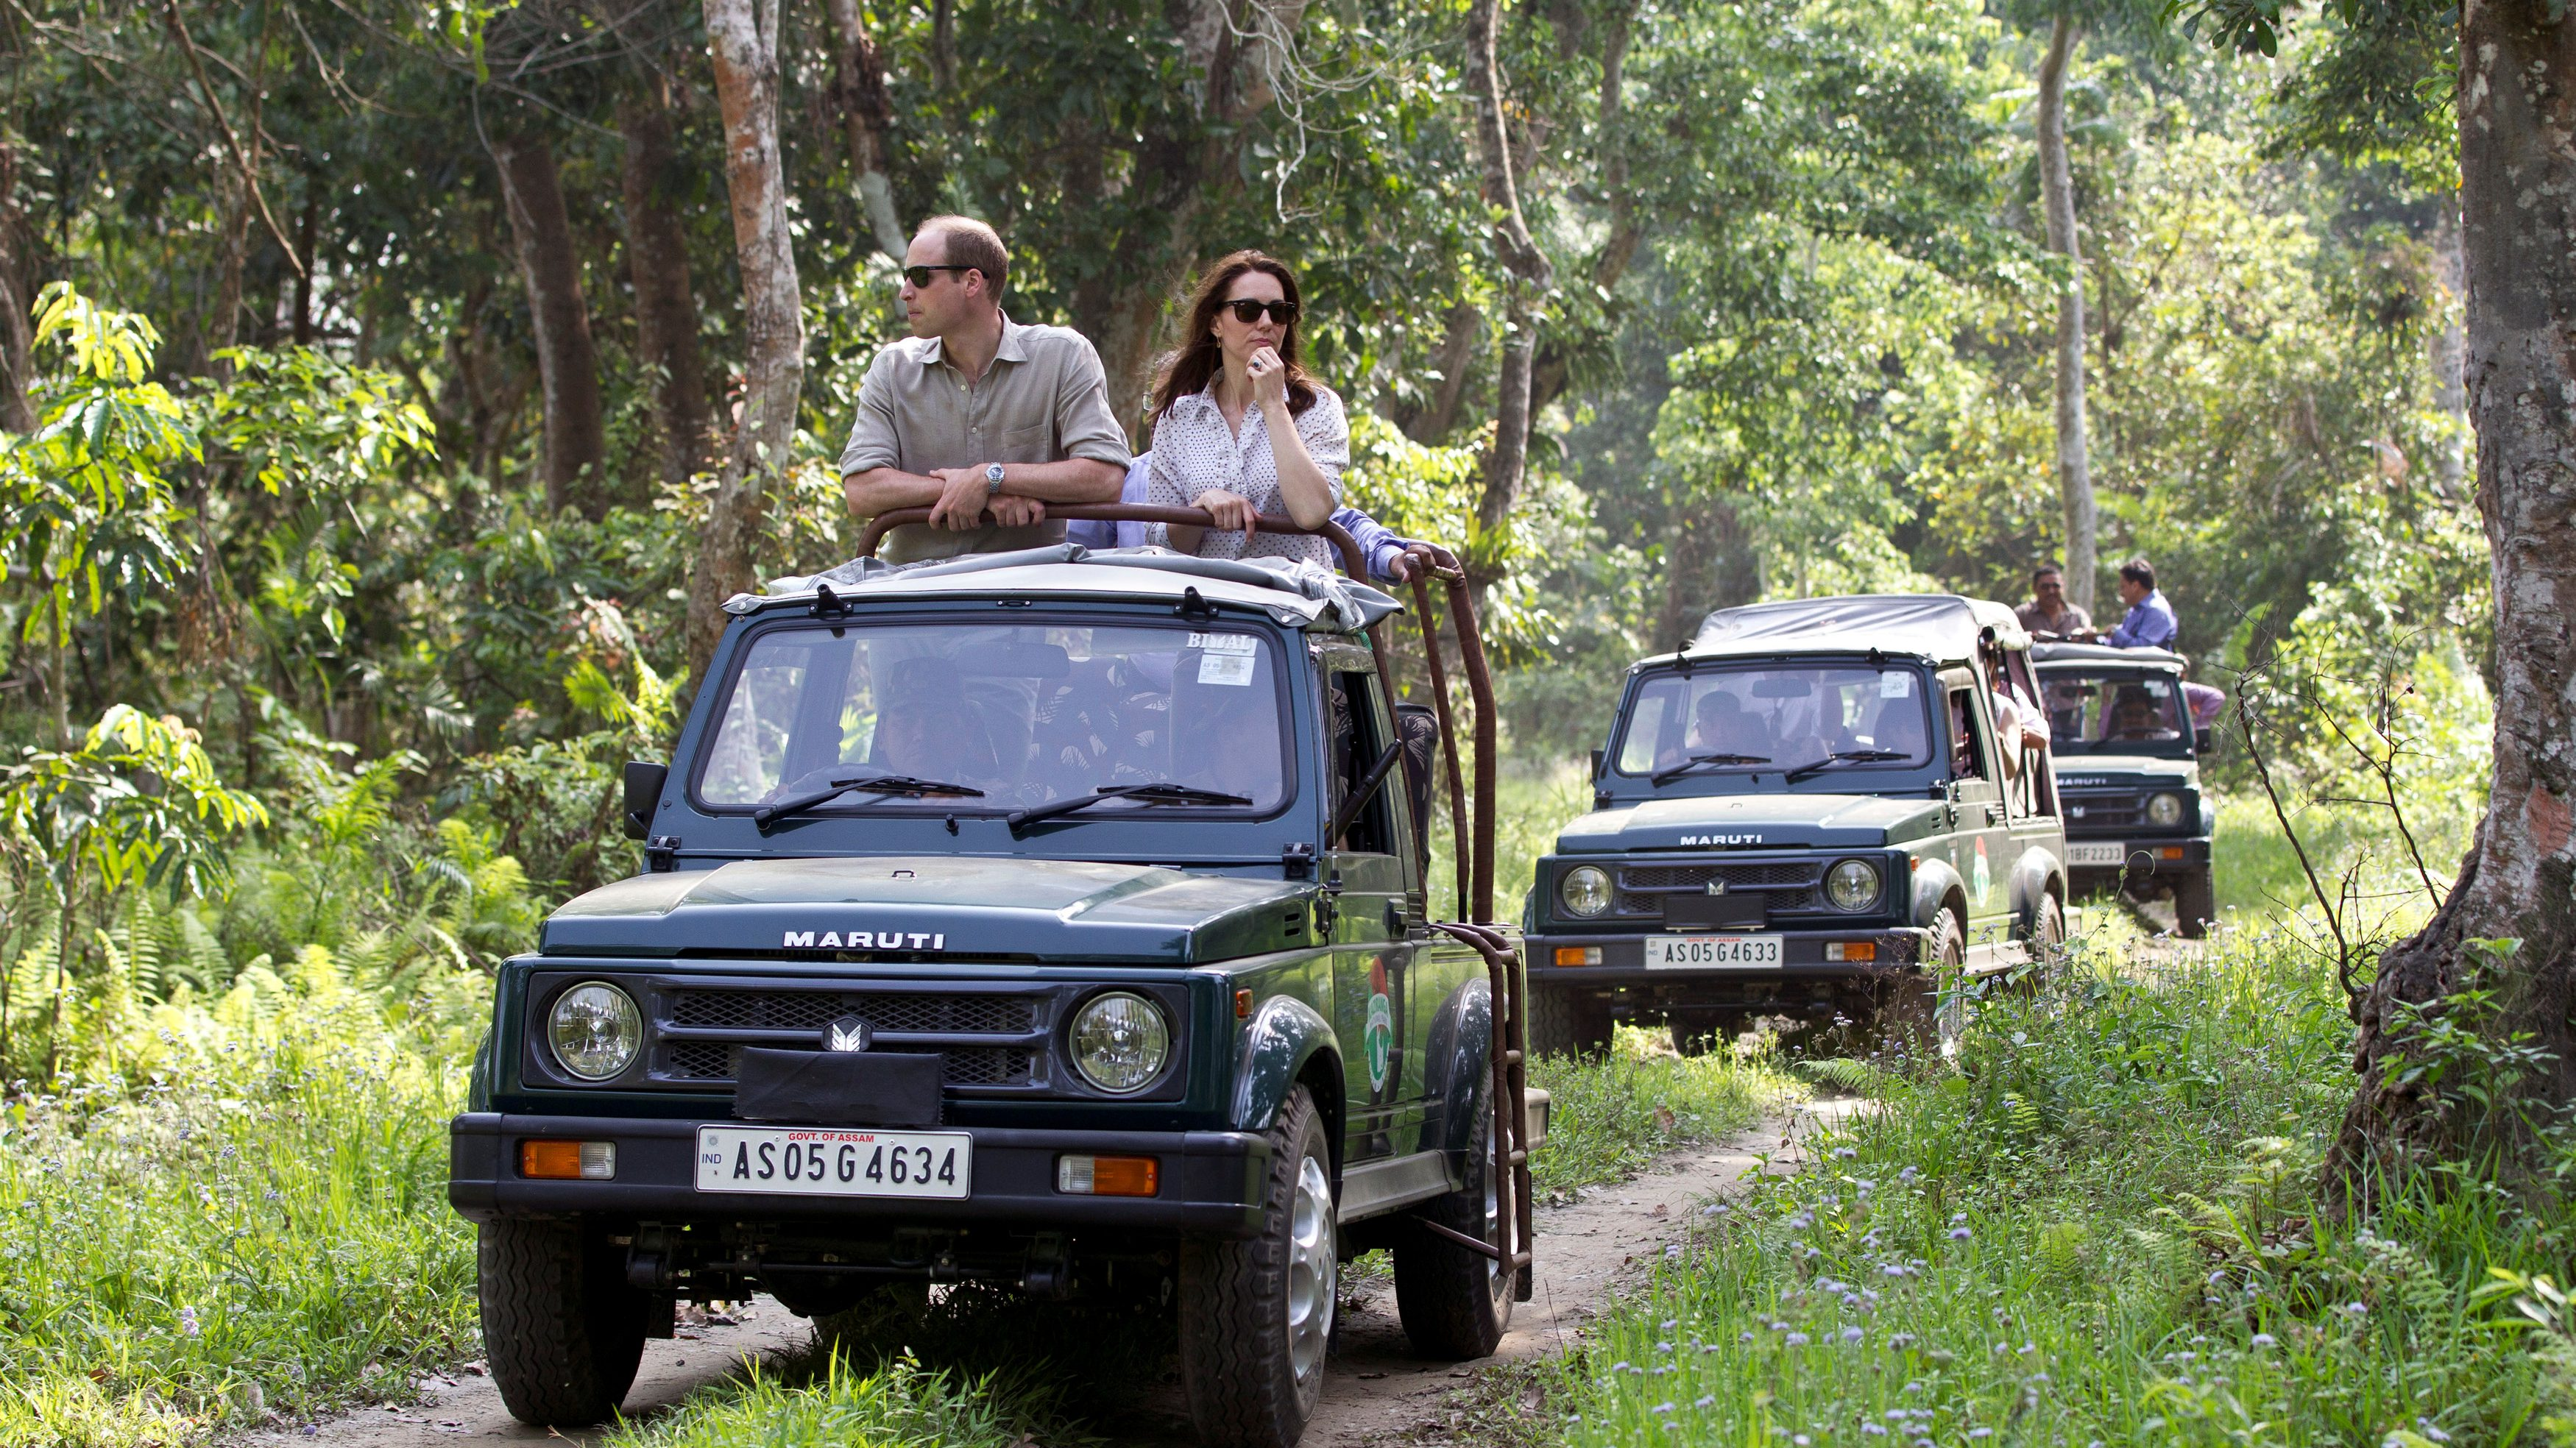 Britain's Prince William and his wife Catherine, the Duchess of Cambridge, are seen on a safari at Kaziranga National Park in the northeastern state of Assam, India, April 13, 2016. REUTERS/Heathcliff O'Malley/Pool - RTX29QPX